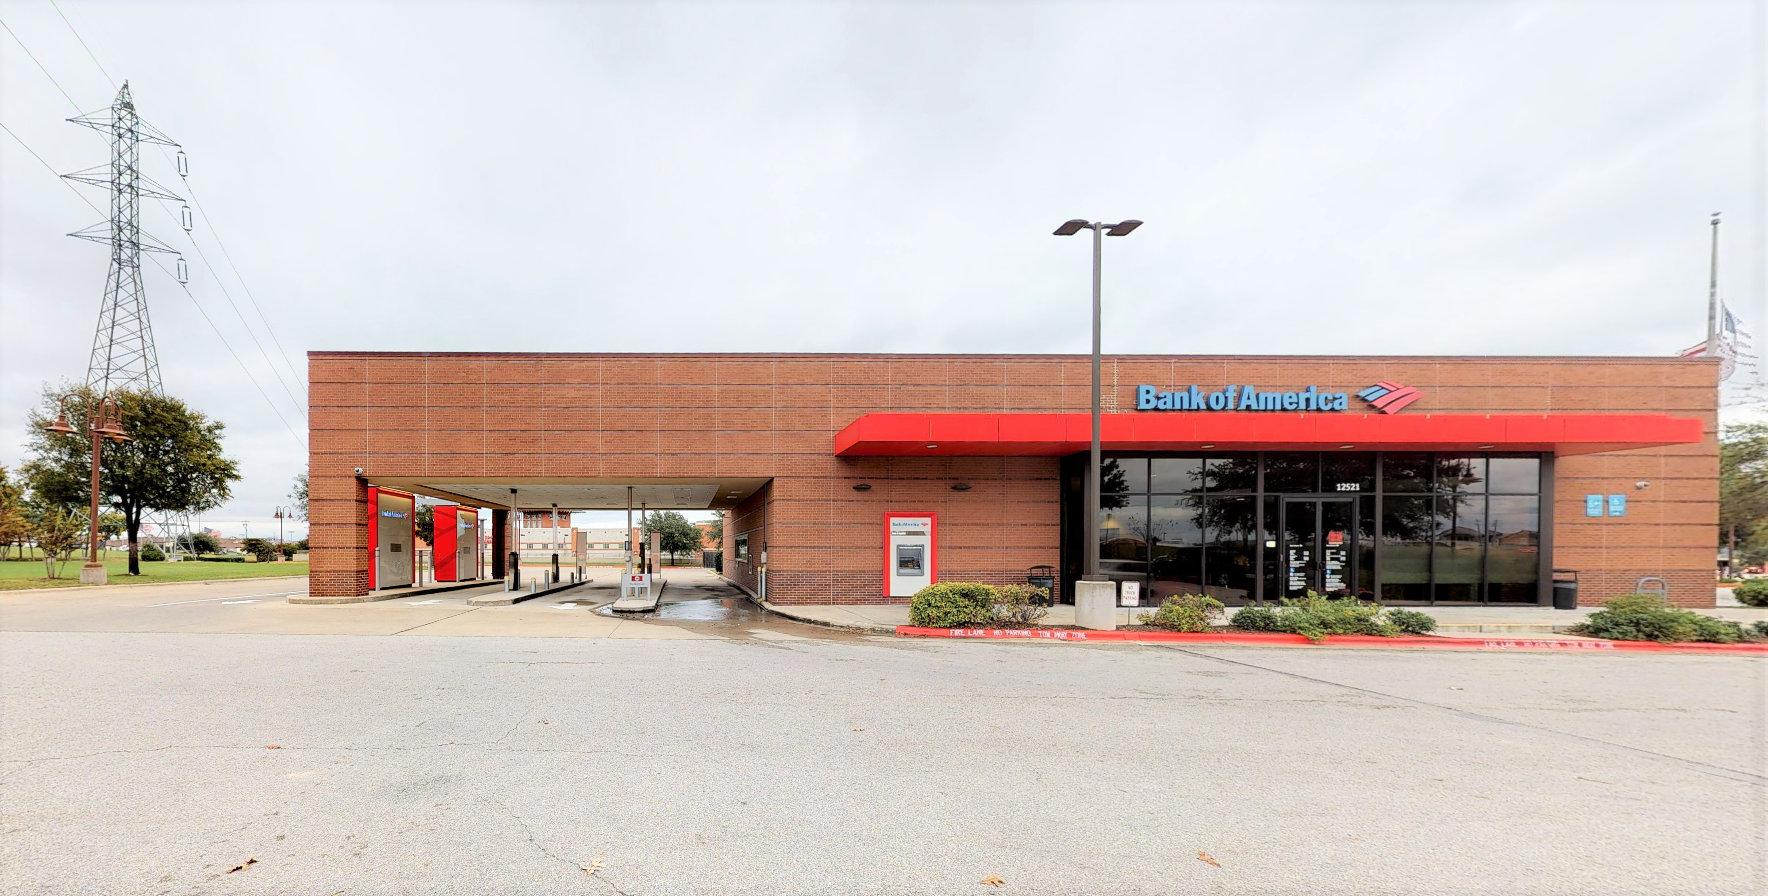 Bank of America financial center with drive-thru ATM and teller | 12521 N Interstate 35, Austin, TX 78753